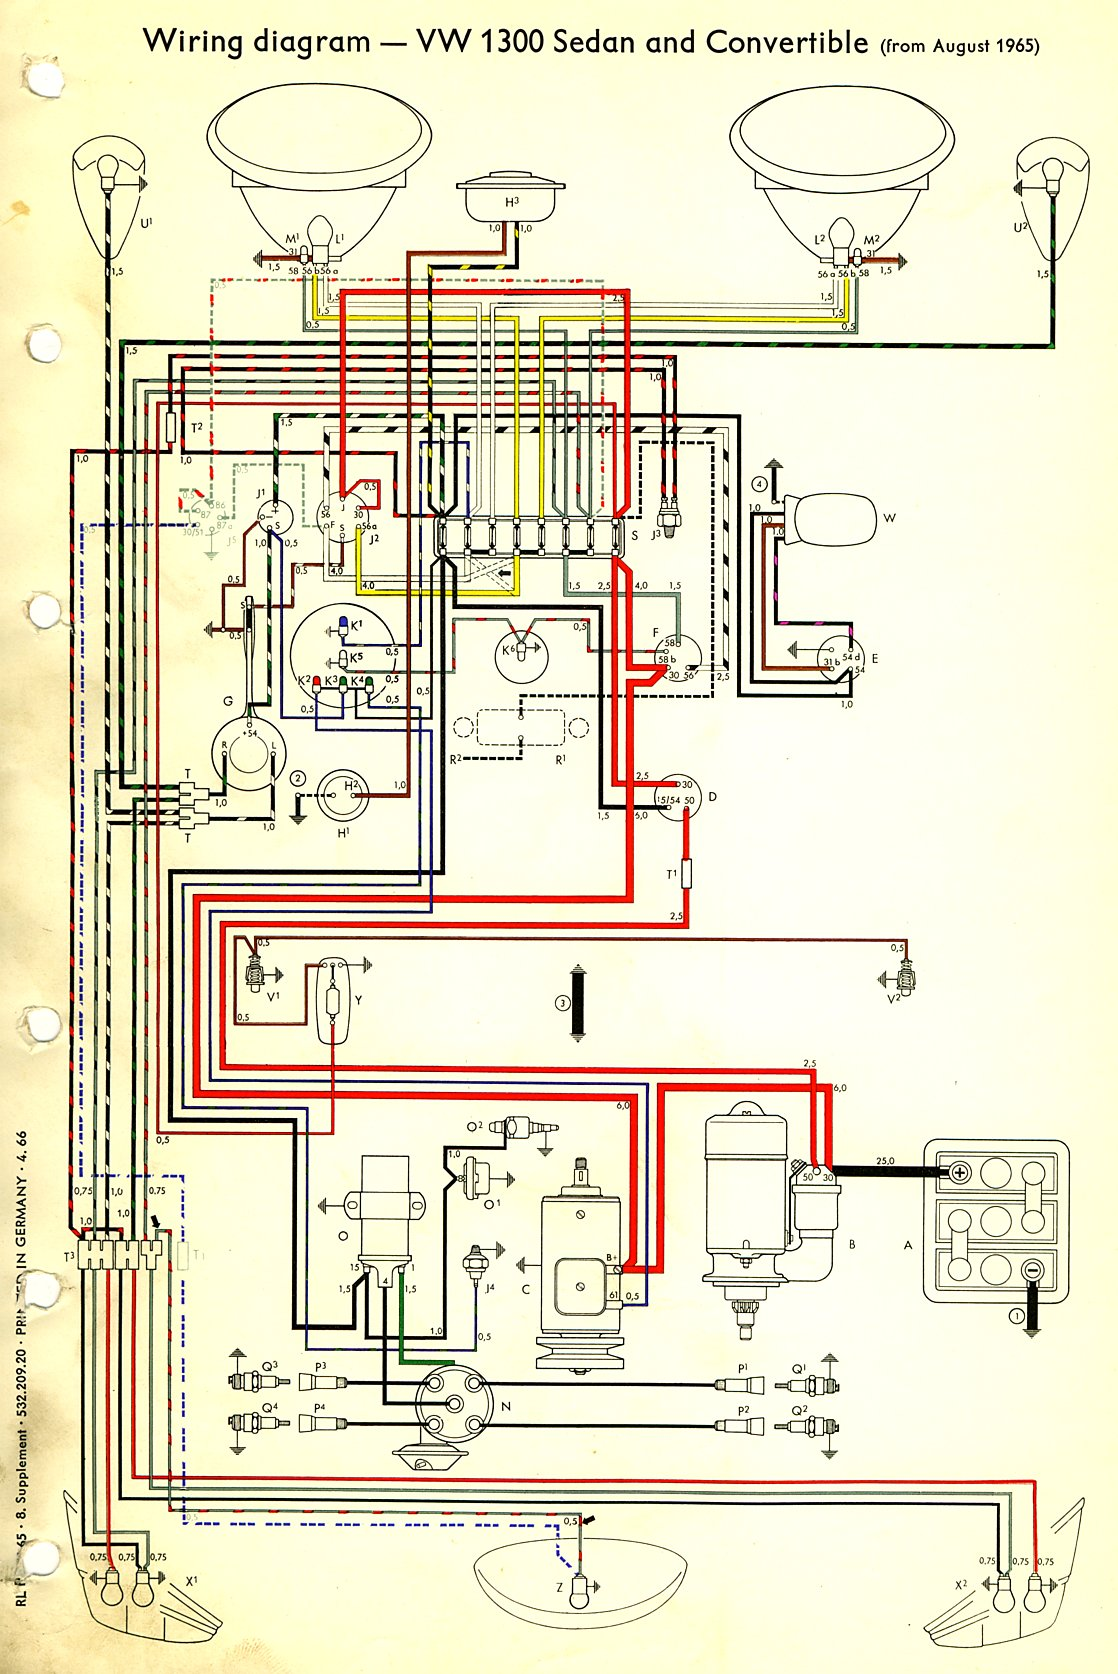 bug_66 beetle wiring diagram 71 super beetle wiring diagram \u2022 free wiring 1965 vw beetle wiring diagram at edmiracle.co